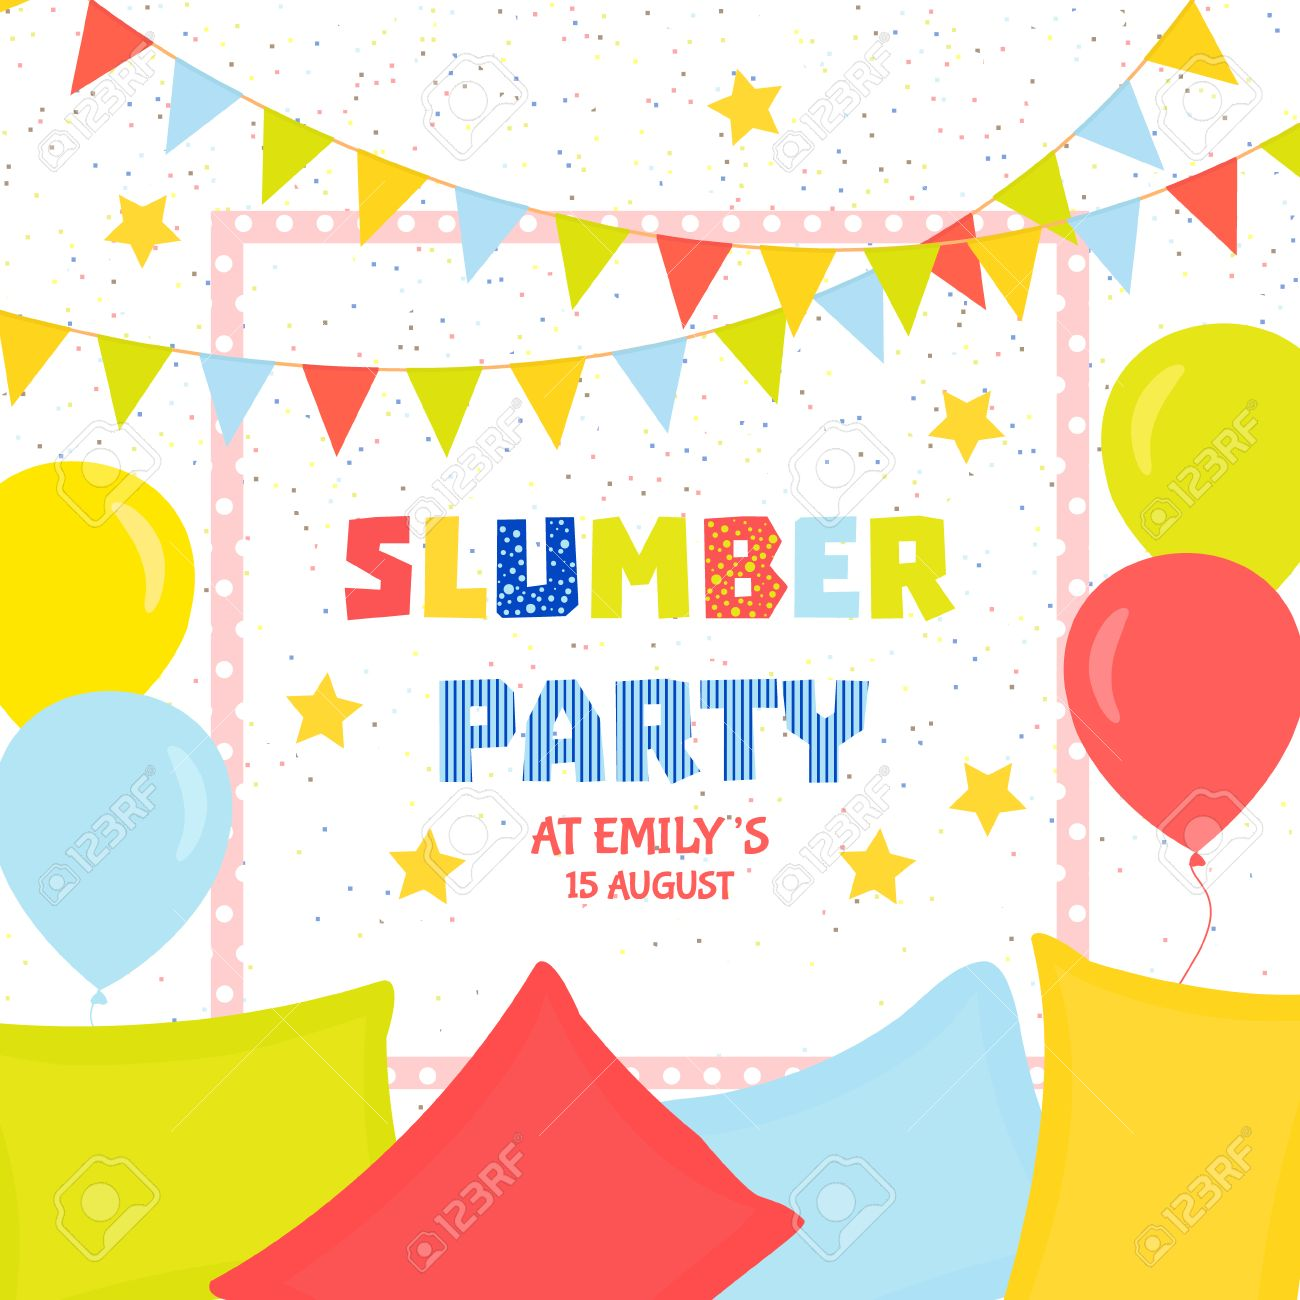 Slumber Party Invitation Template With Colorful Flags, Balloons ...